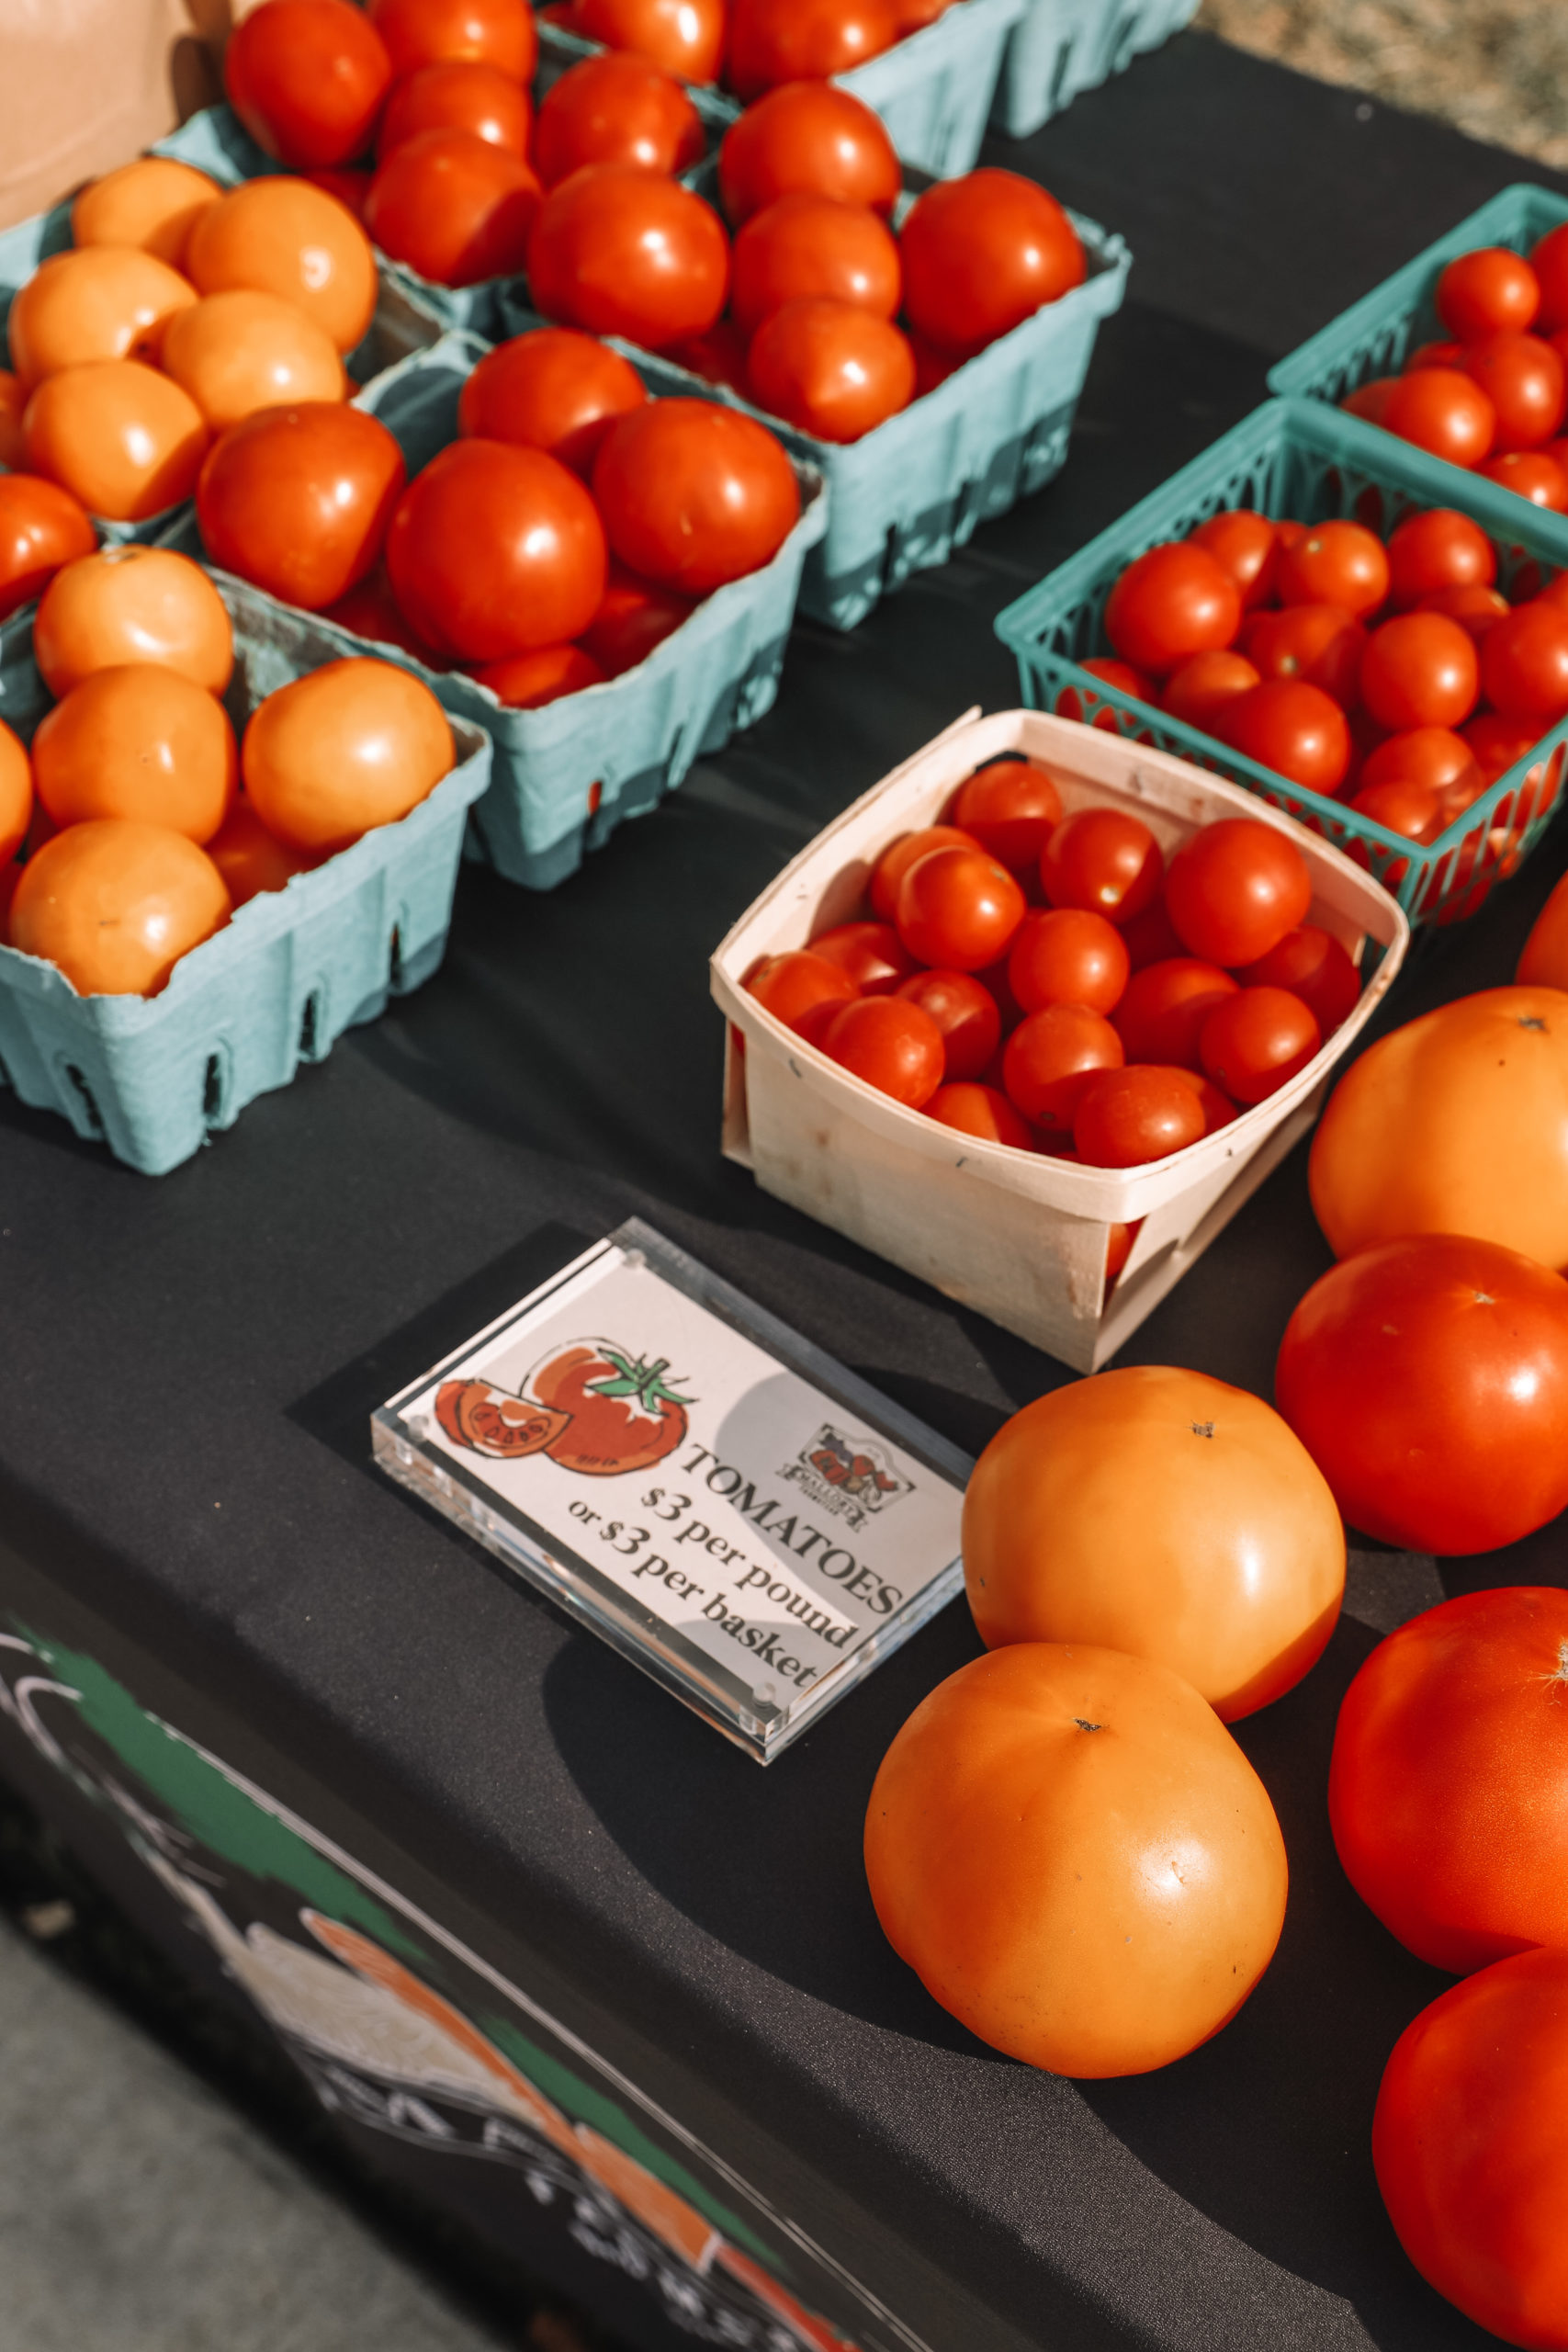 tomatoes on a table for sale